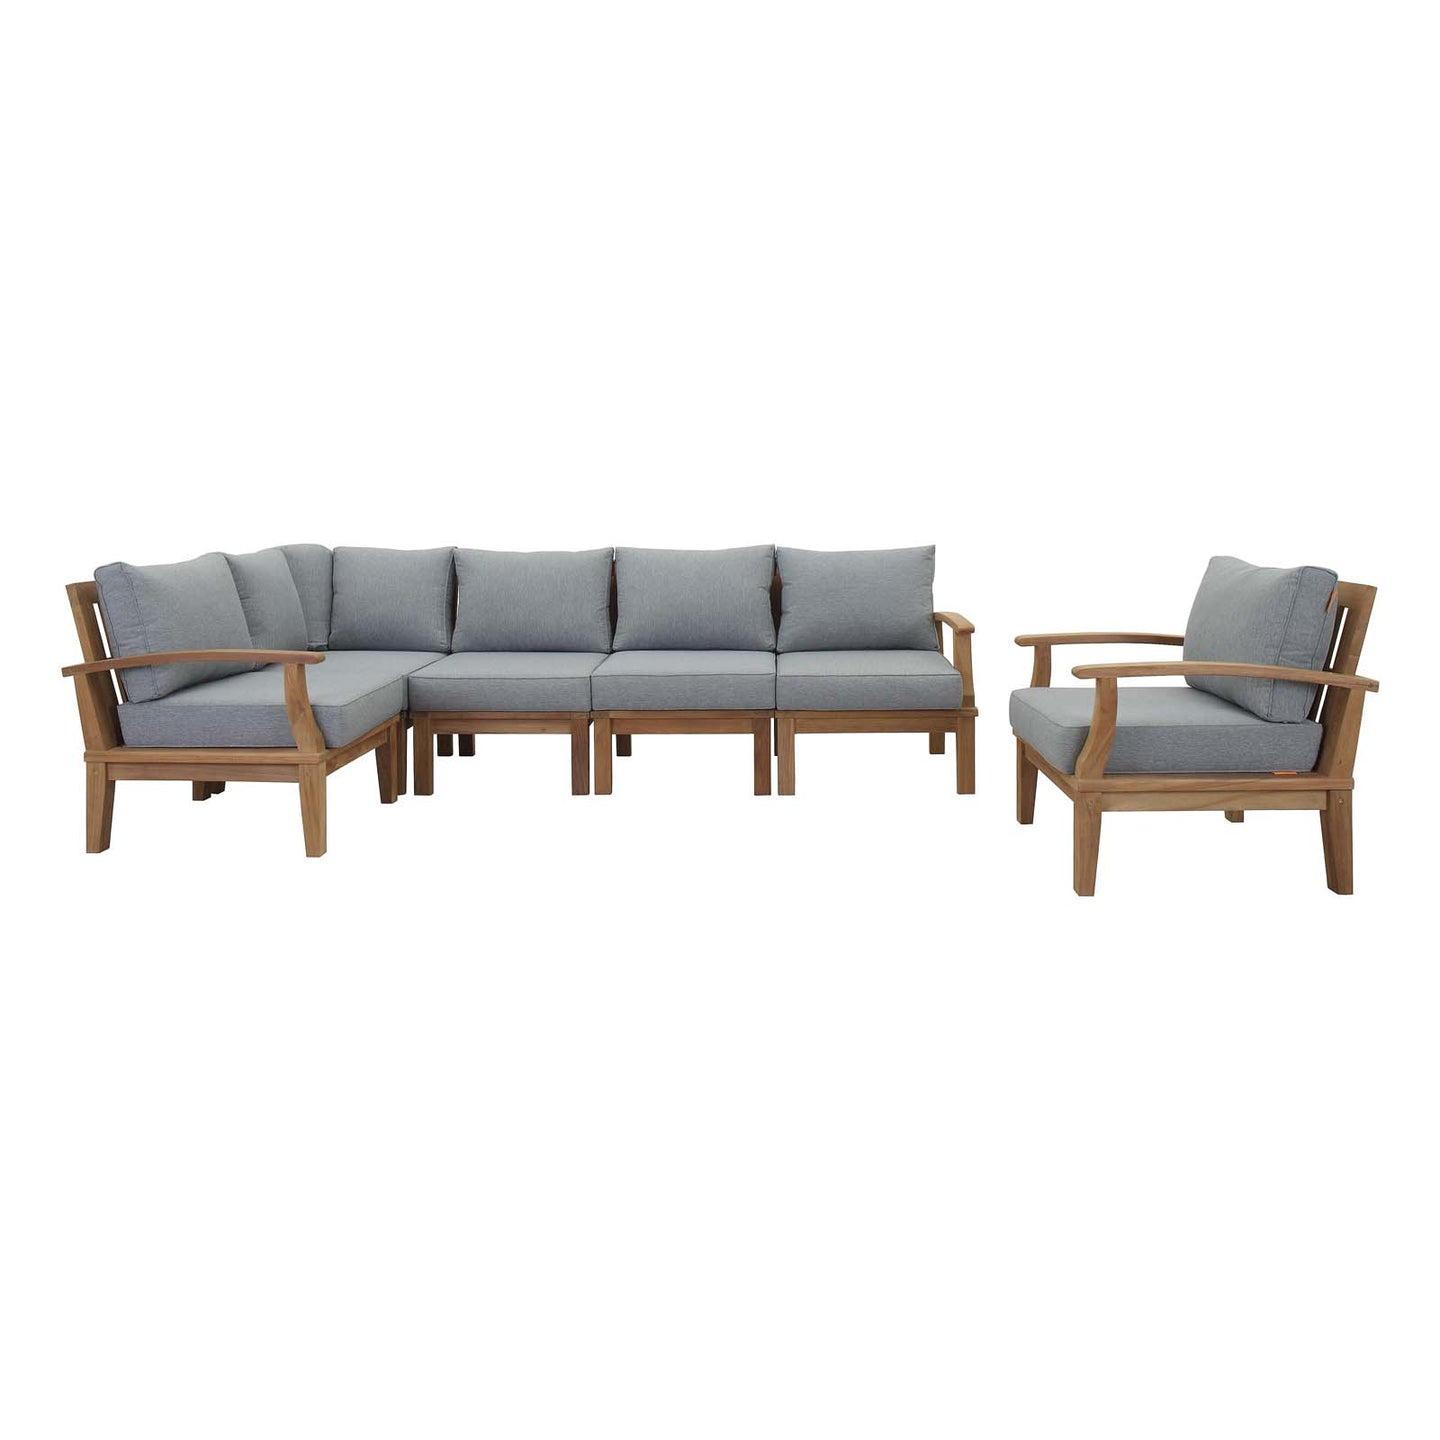 Modway Furniture Modern Marina 6 Piece Outdoor Patio Teak Sofa Set In Natural White EEI-1816-NAT-WHI-SET - Minimal and Modern